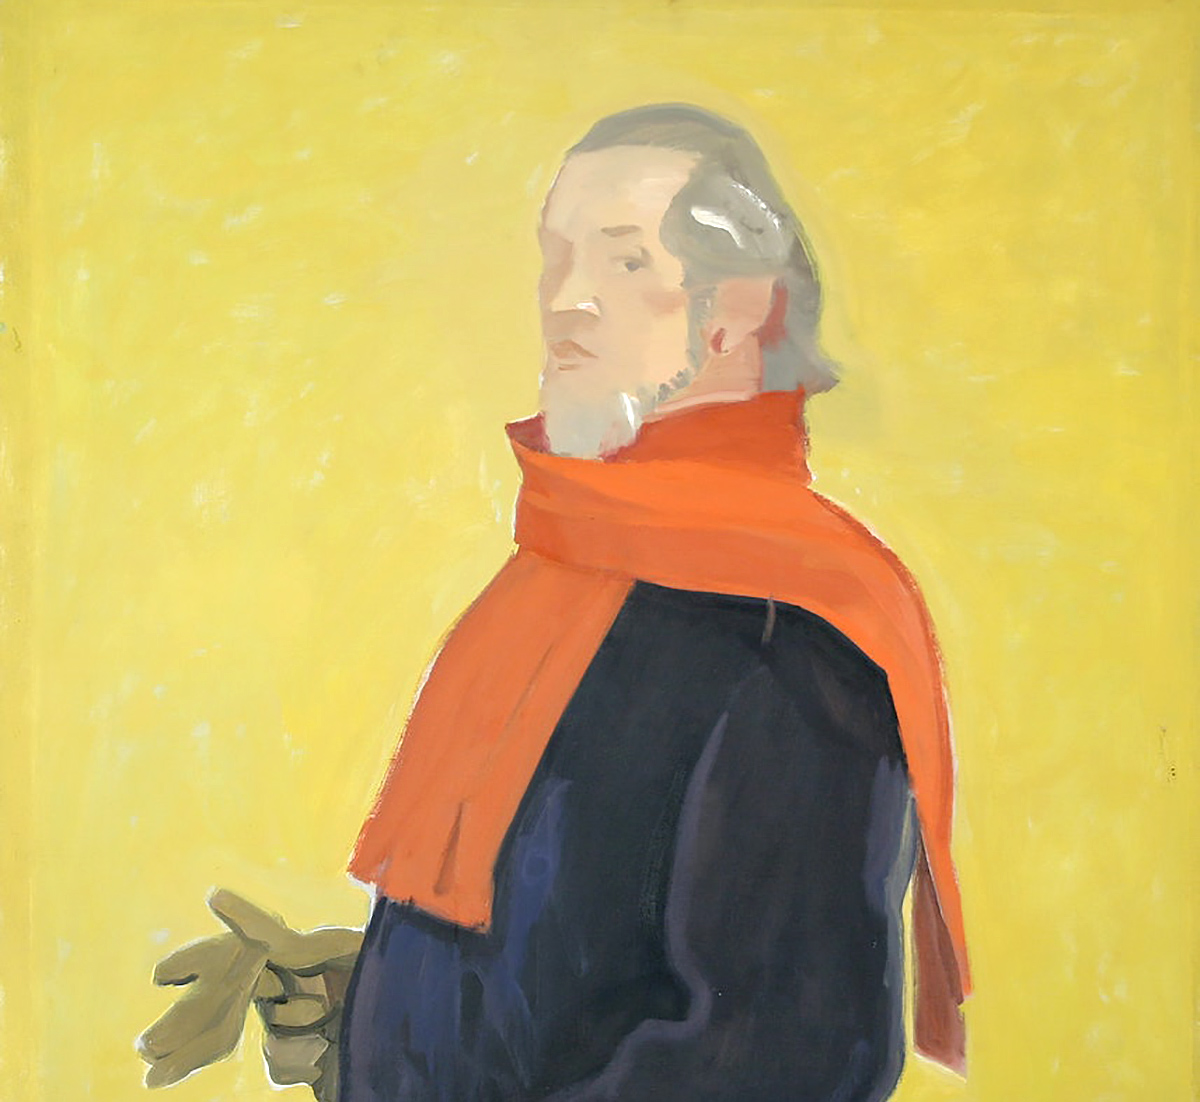 Alexander Goudie, 'Self Portrait with Red Scarf', oil on canvas